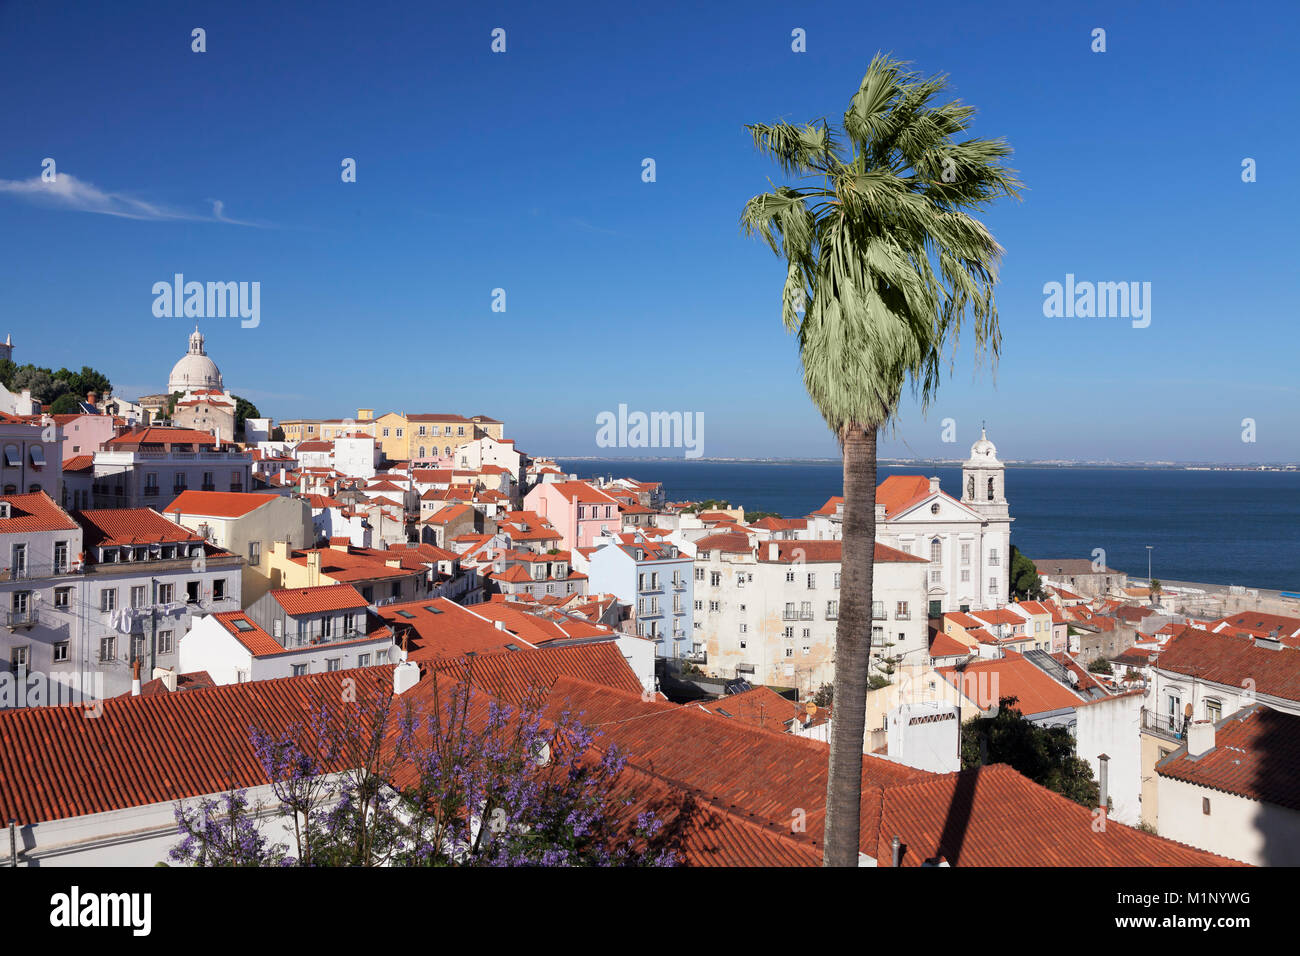 Vue de Santa Luzia et point de vue sur l'Alfama district à l'Tage, Lisbonne, Portugal, Europe Photo Stock